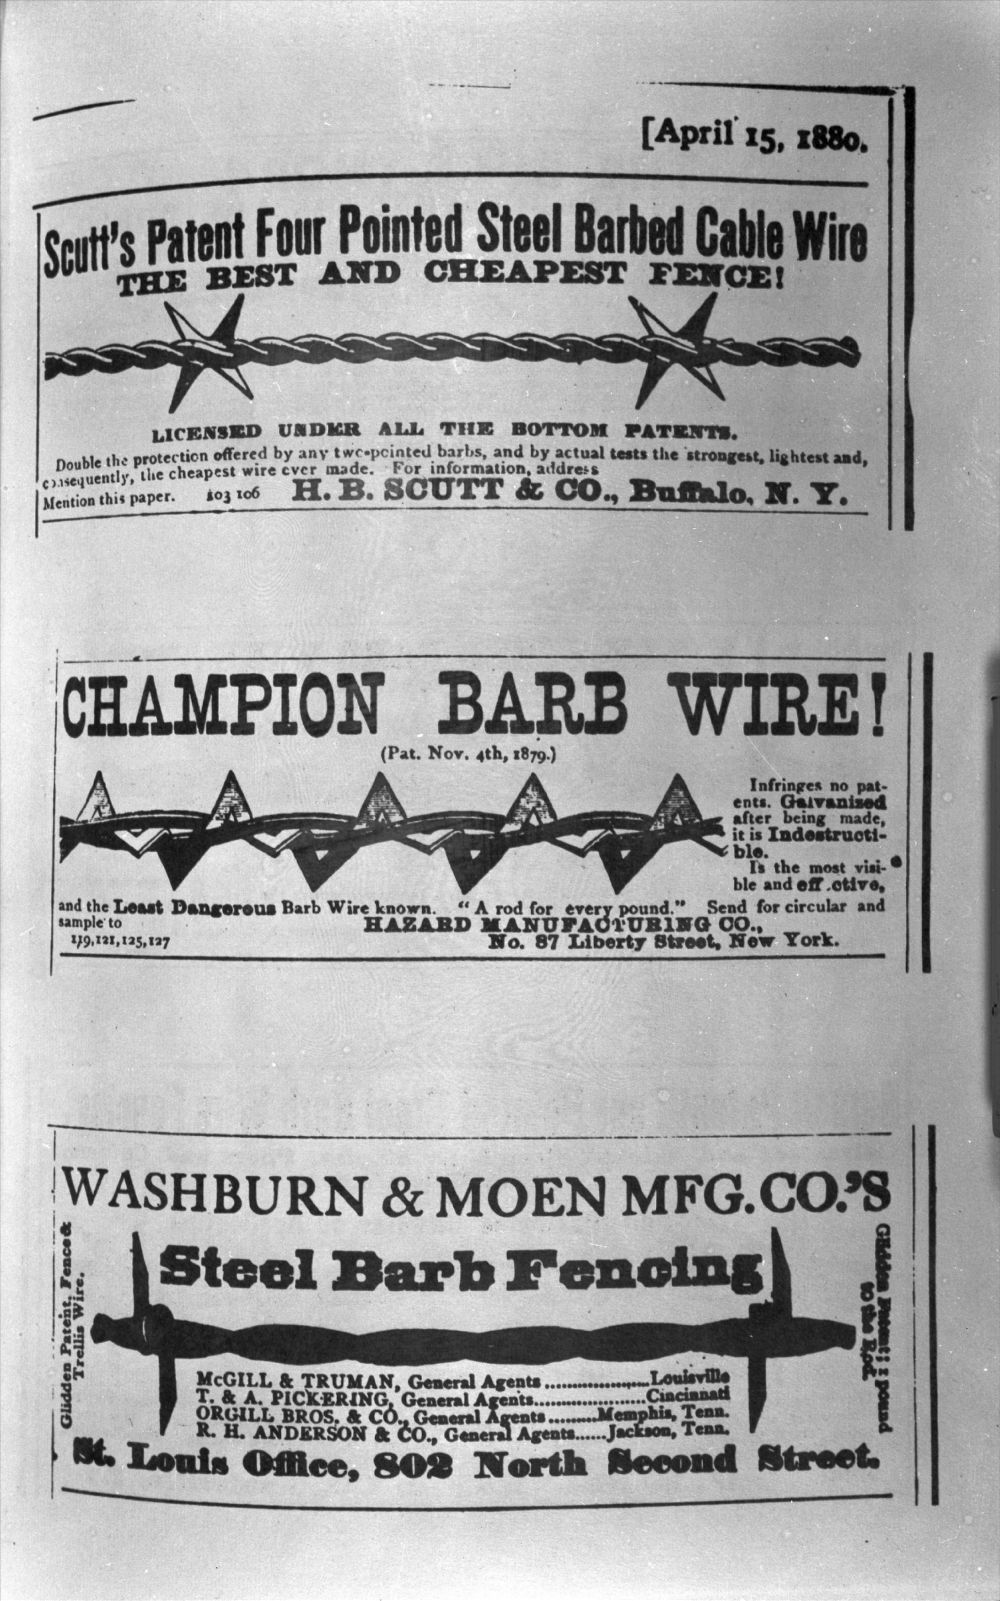 Barbed wire advertisements